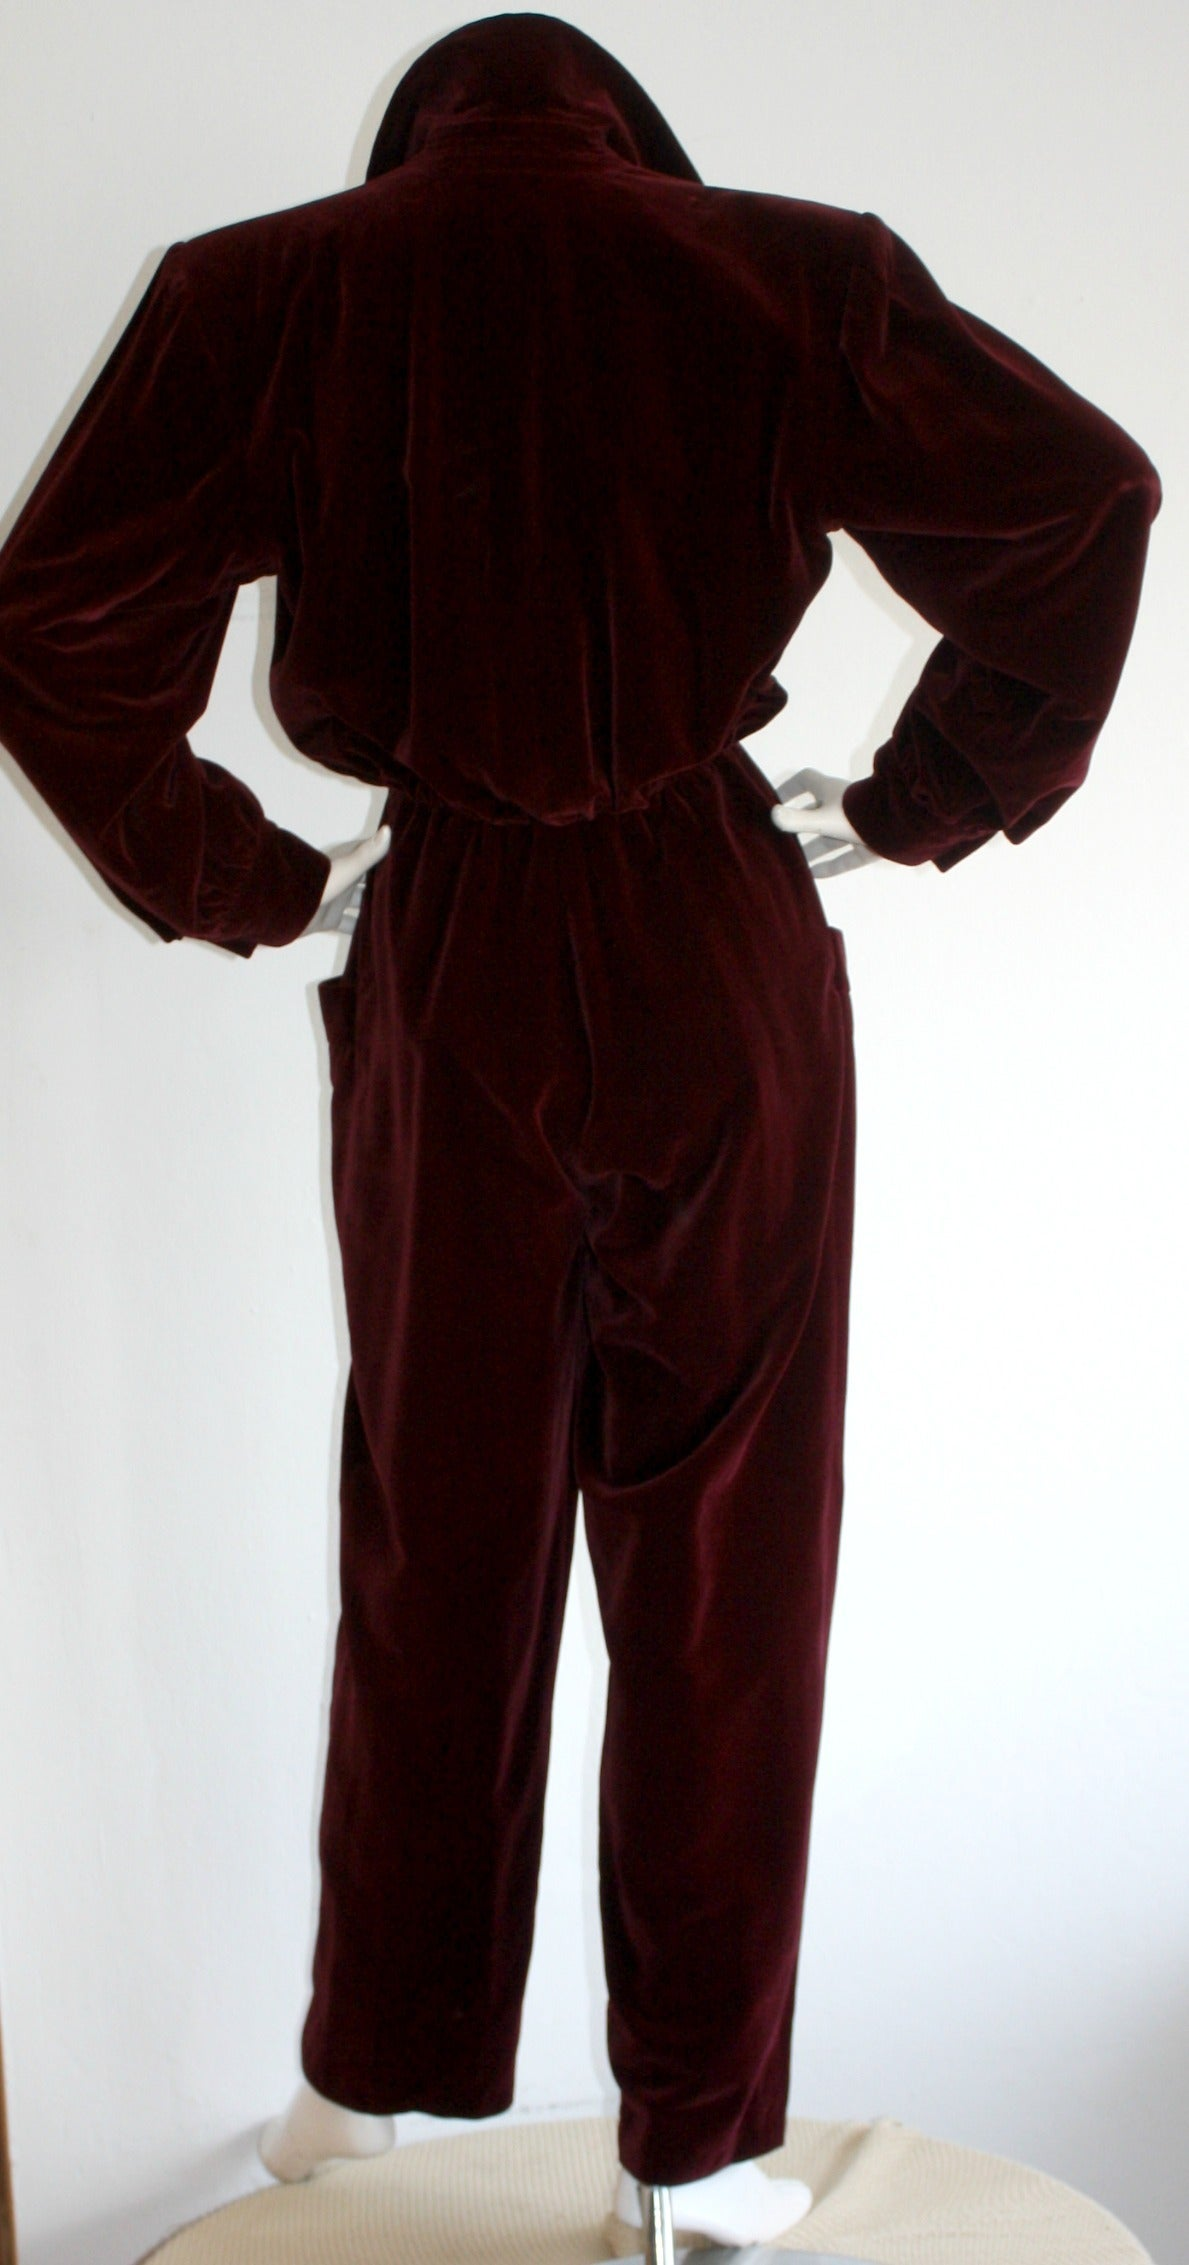 Important Vintage Yves Saint Laurent Le Smoking Burgundy Velvet Jumpsuit For Sale 1